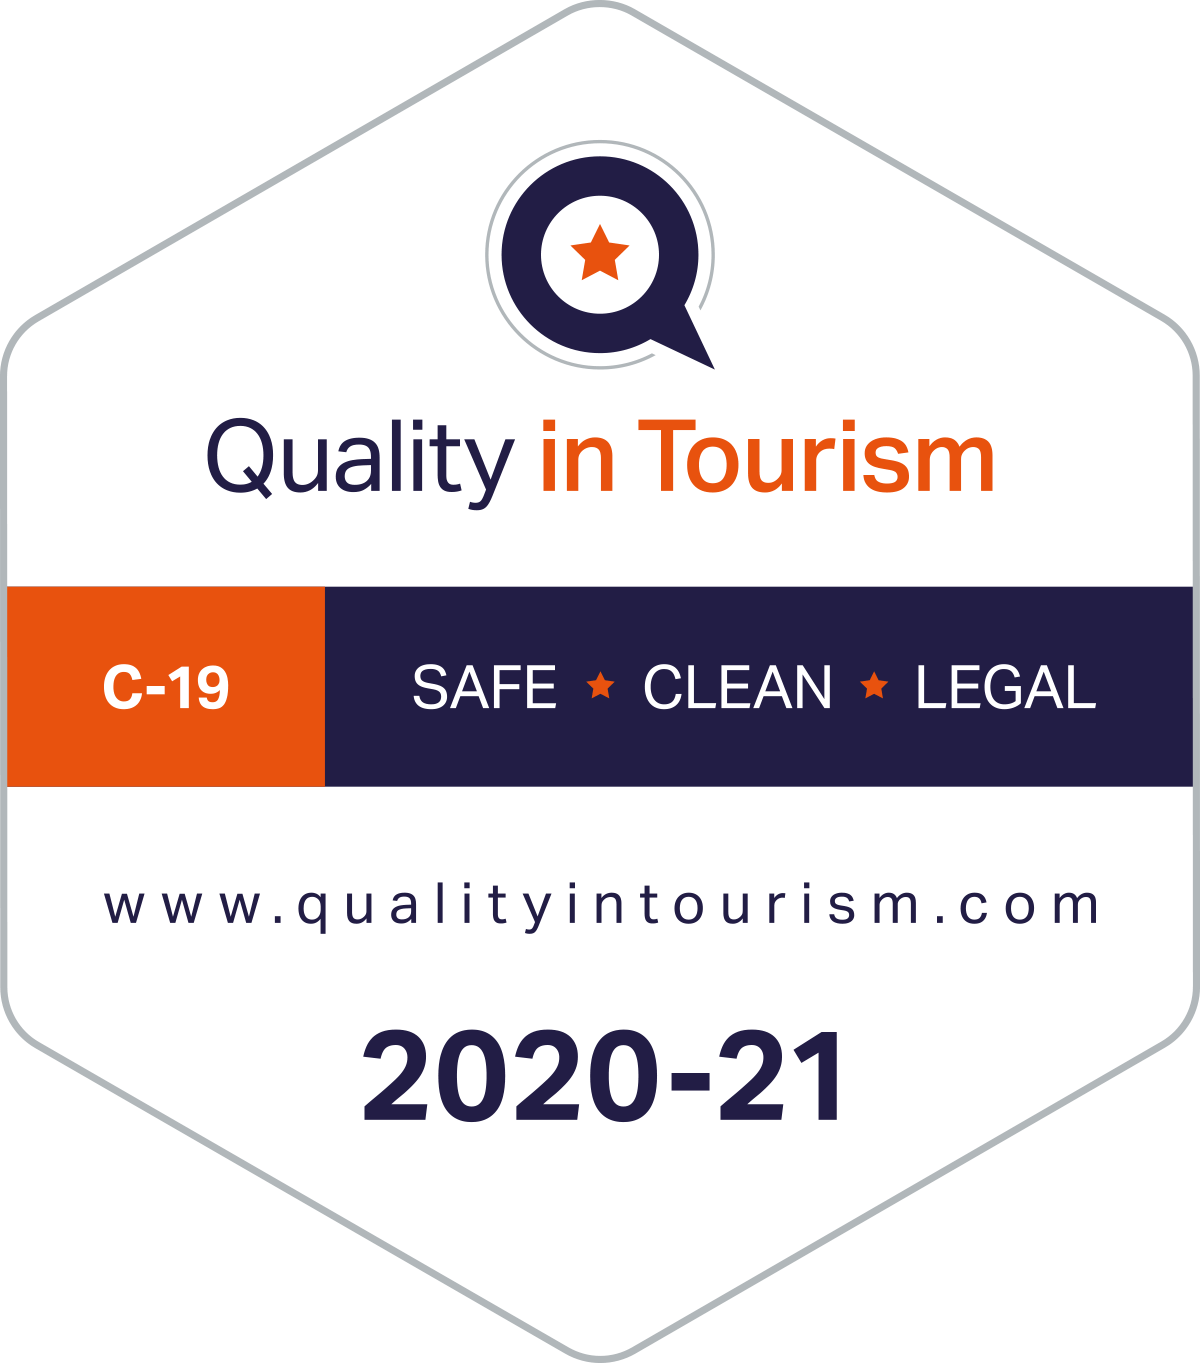 Quality in Tourism award